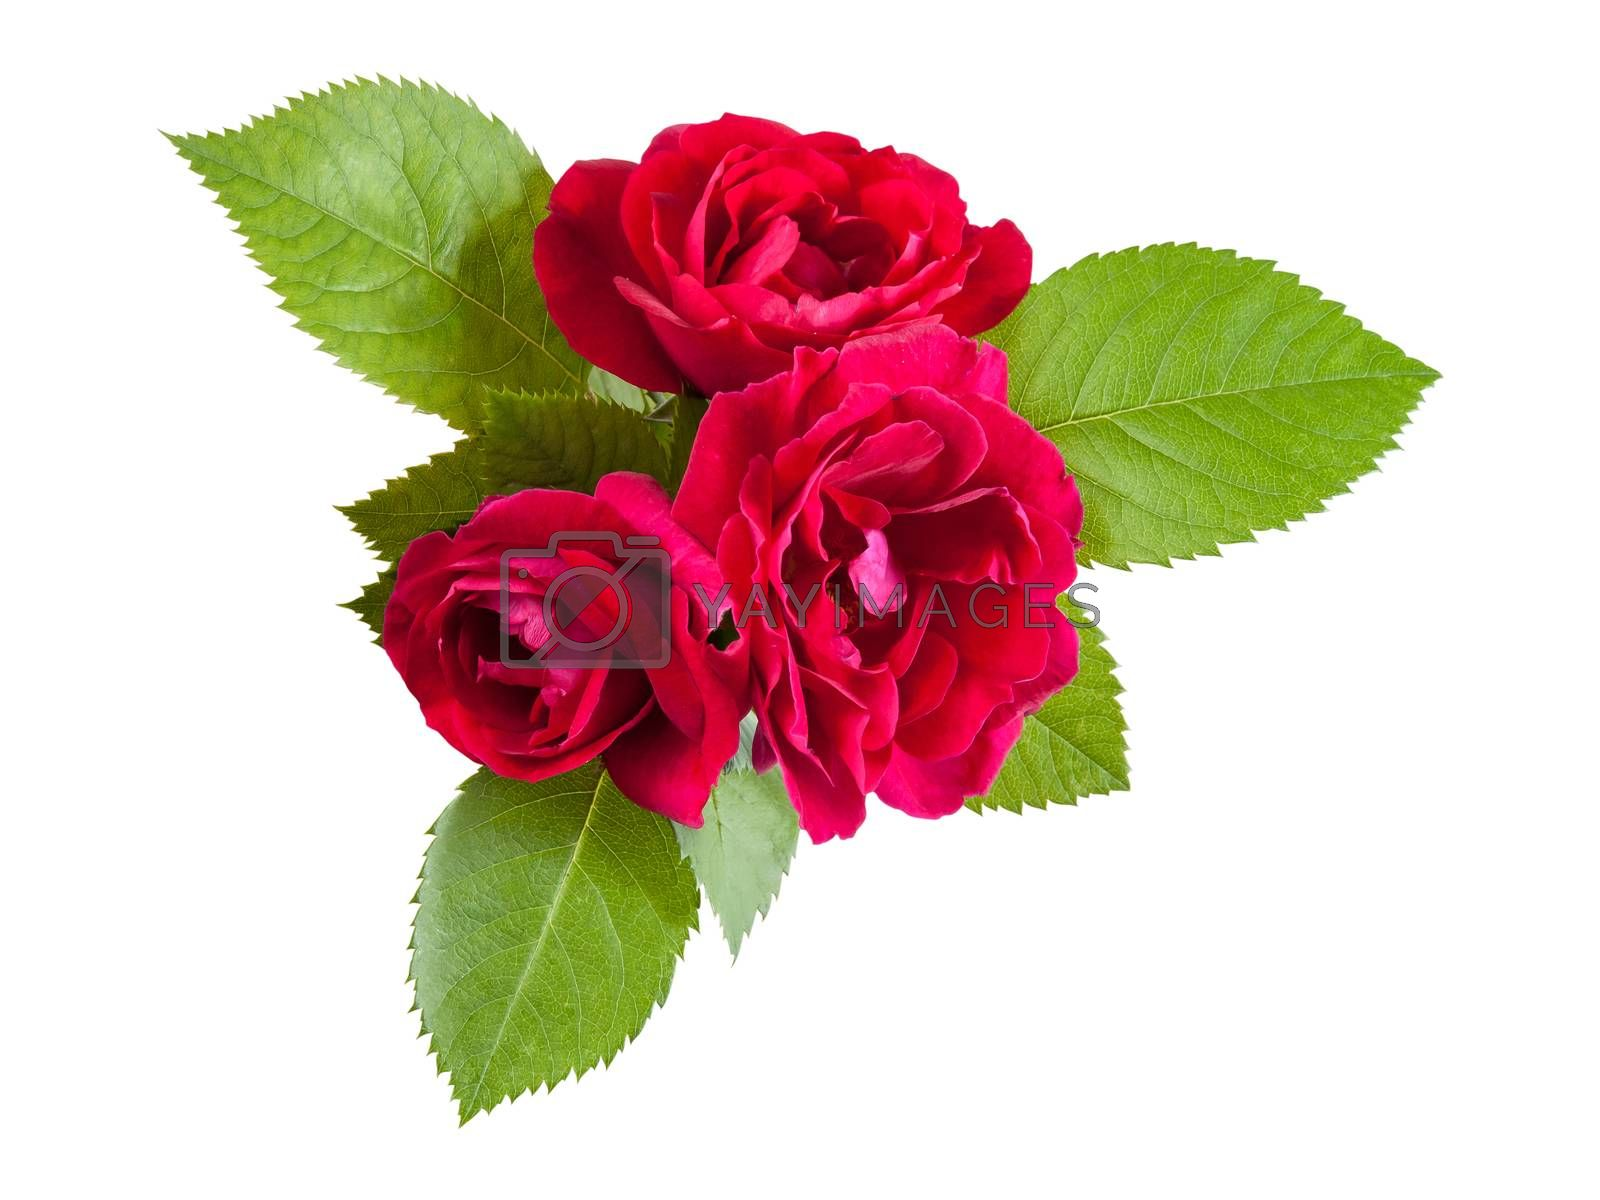 Red rose flowers with leaves, isolated on white backround